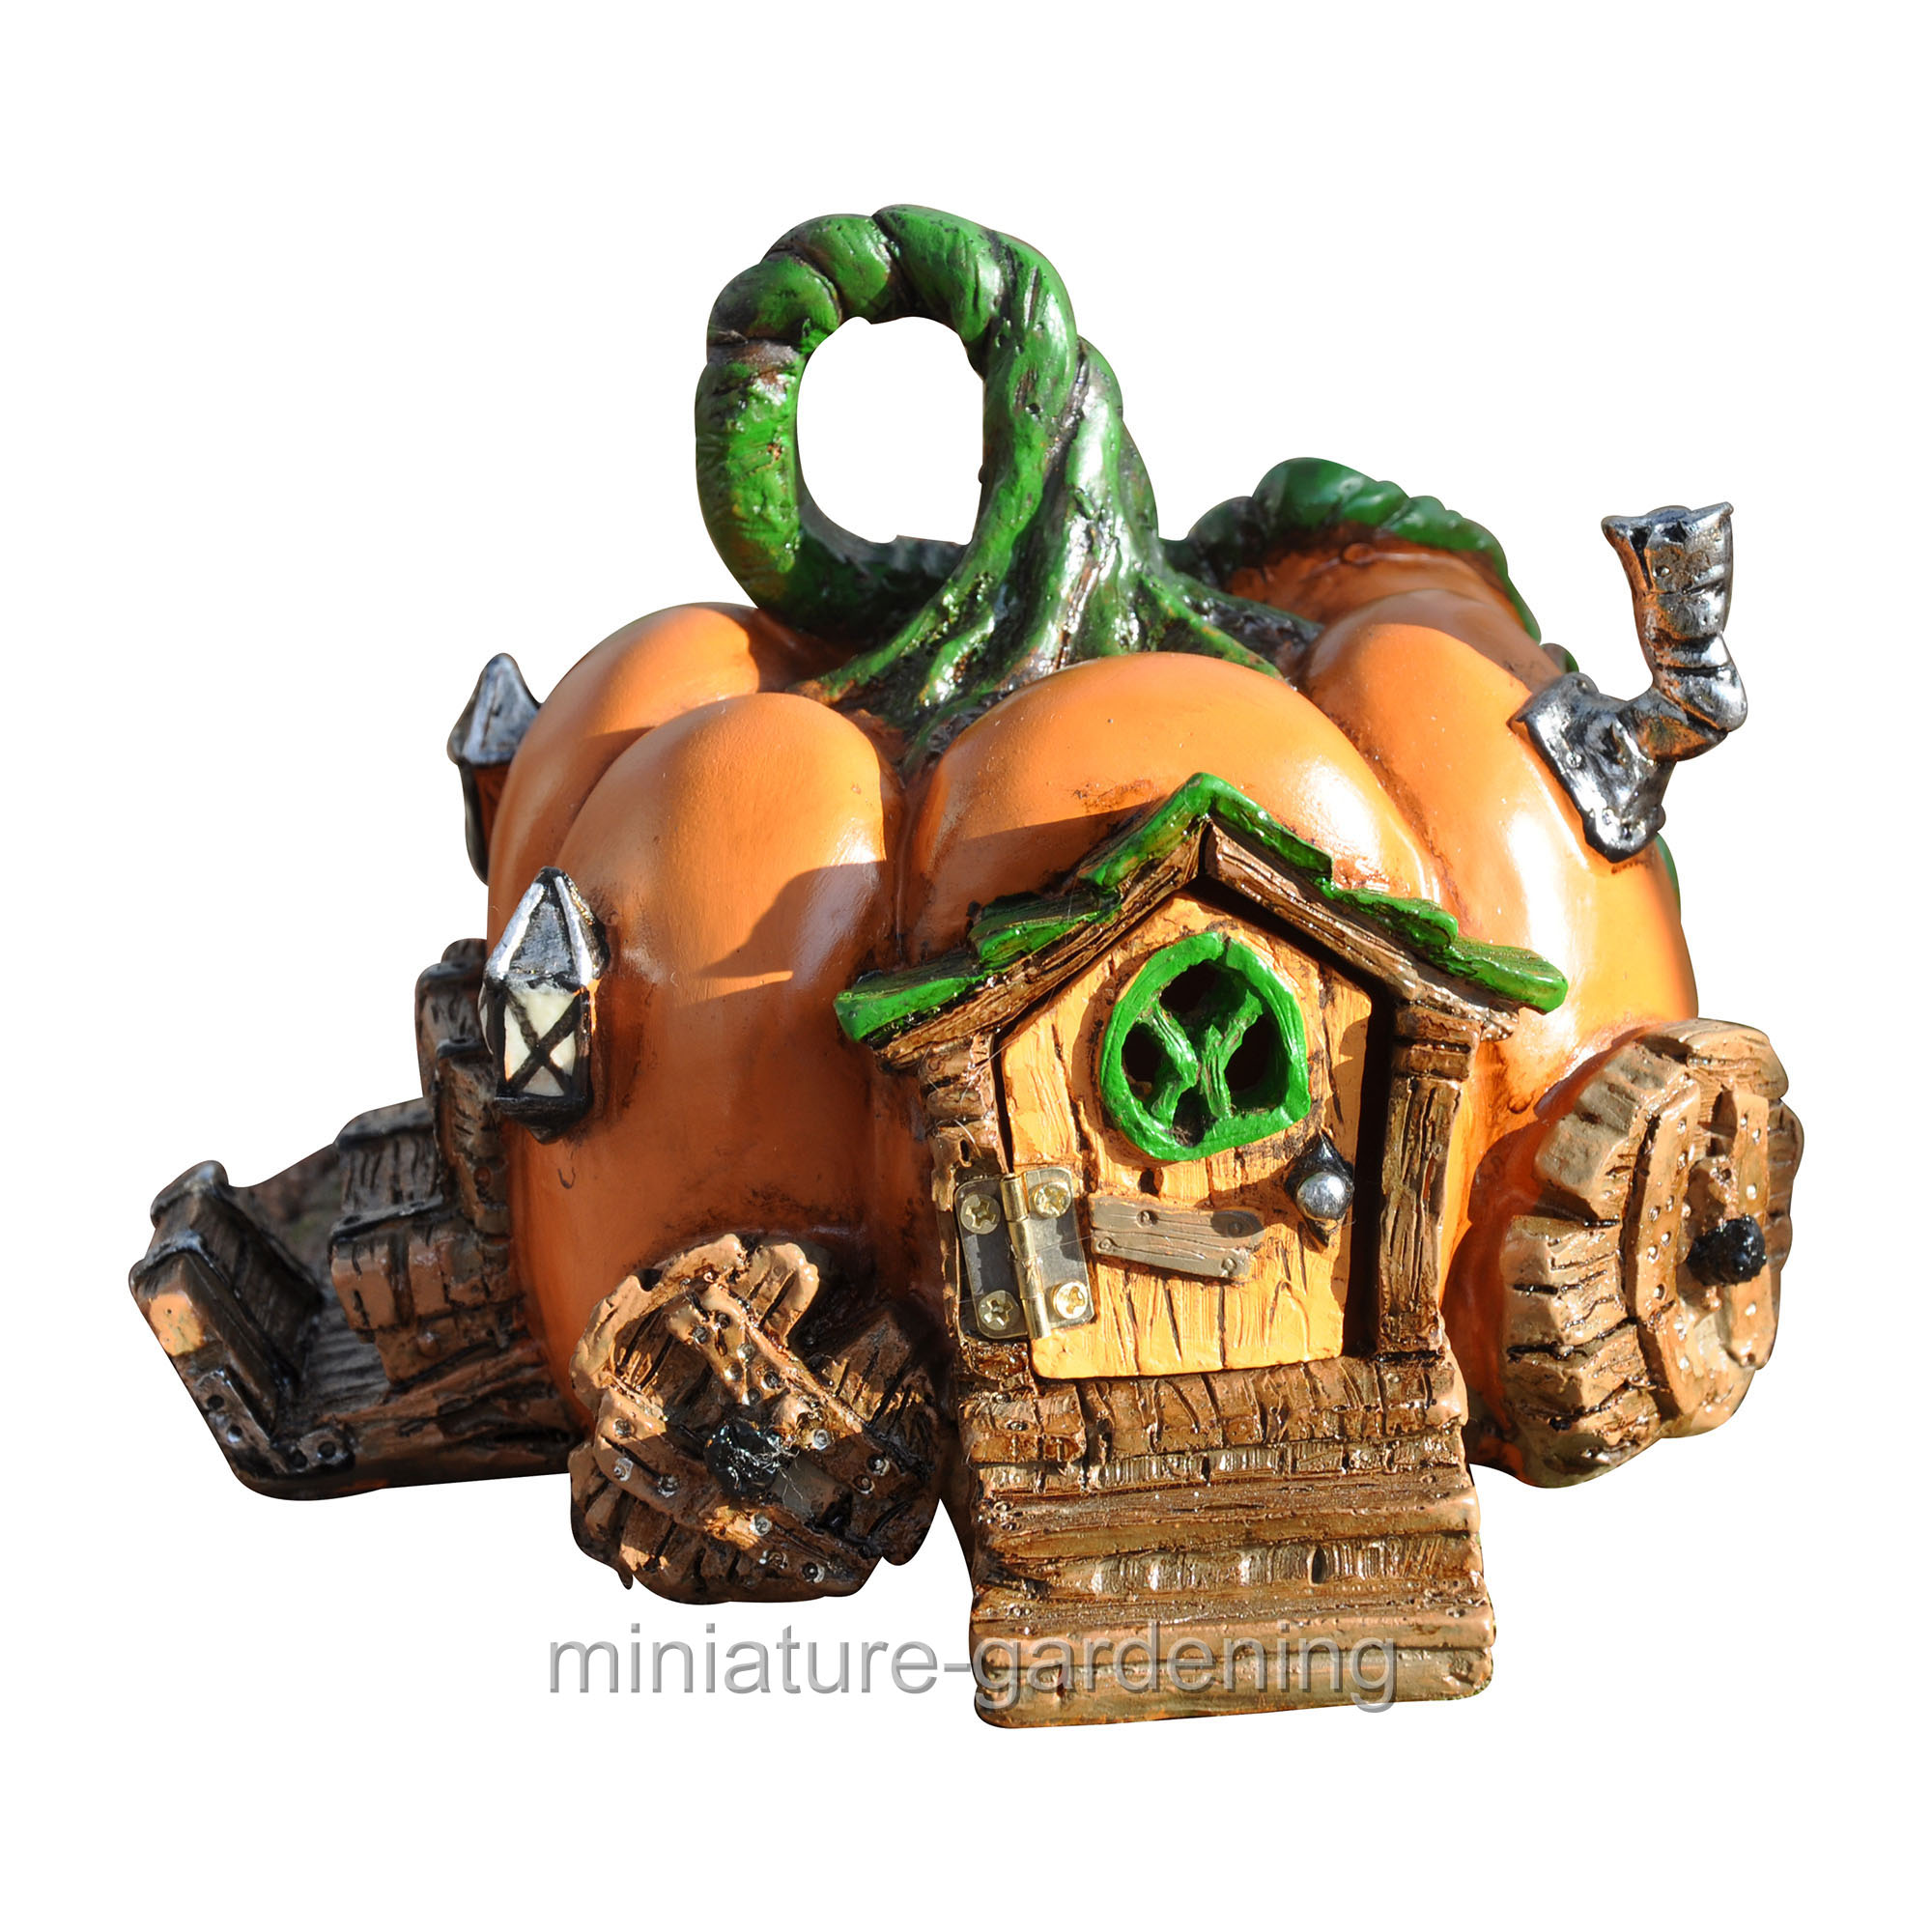 Georgetown Home & Garden Pumpkin Carriage Fairy House for Miniature Garden, Fairy Garden